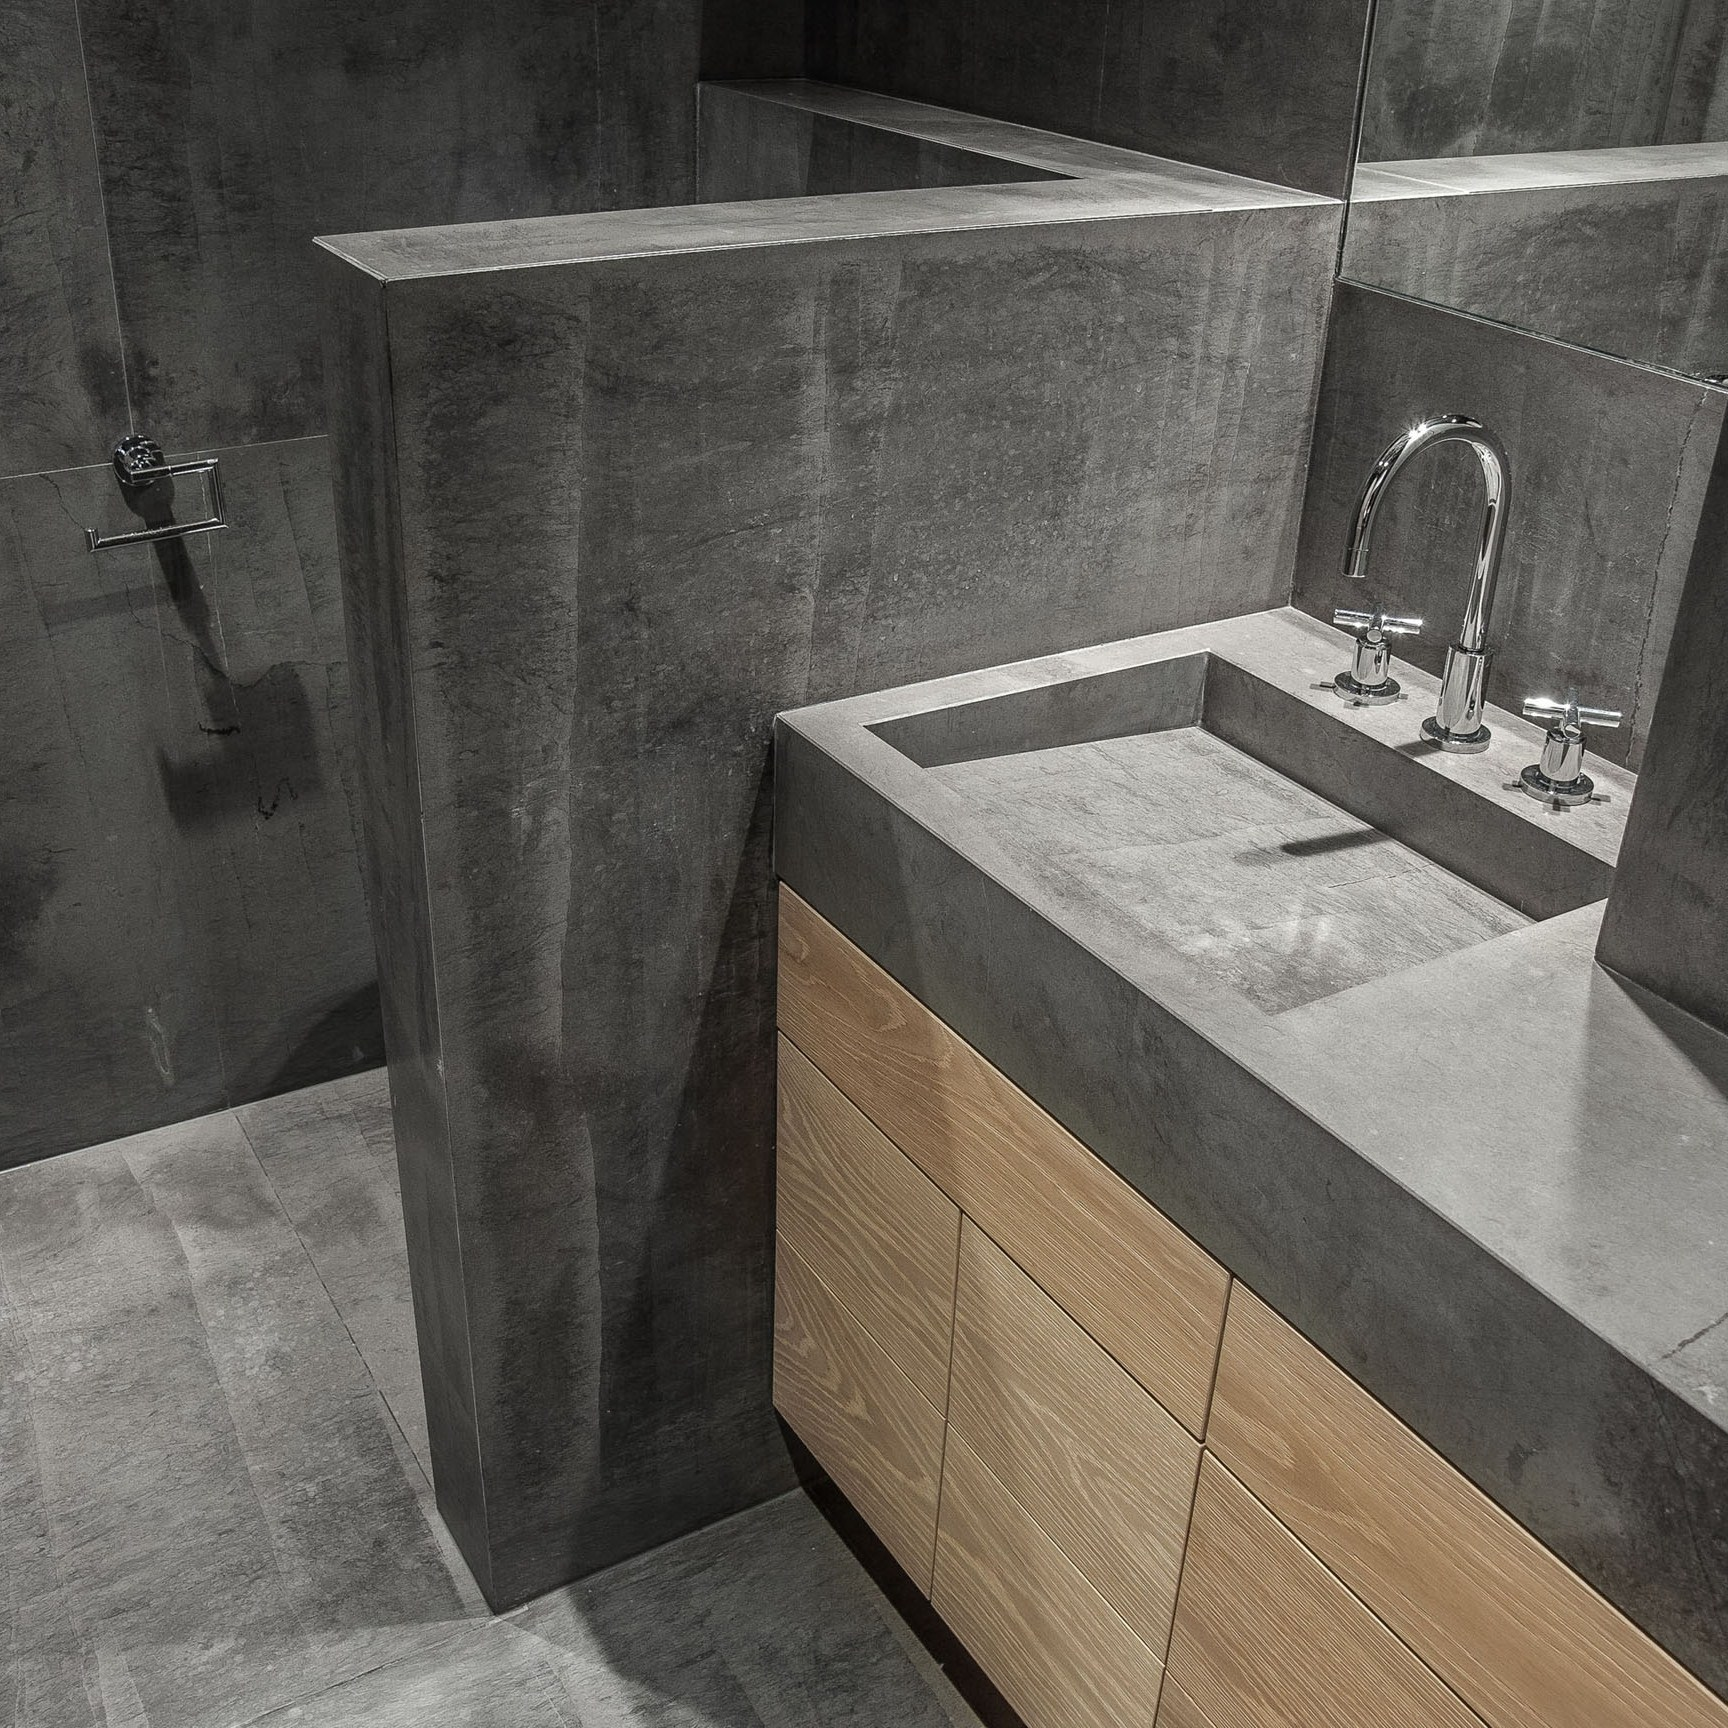 Margraf a trendy bathroom environment in design for Trendy bathrooms